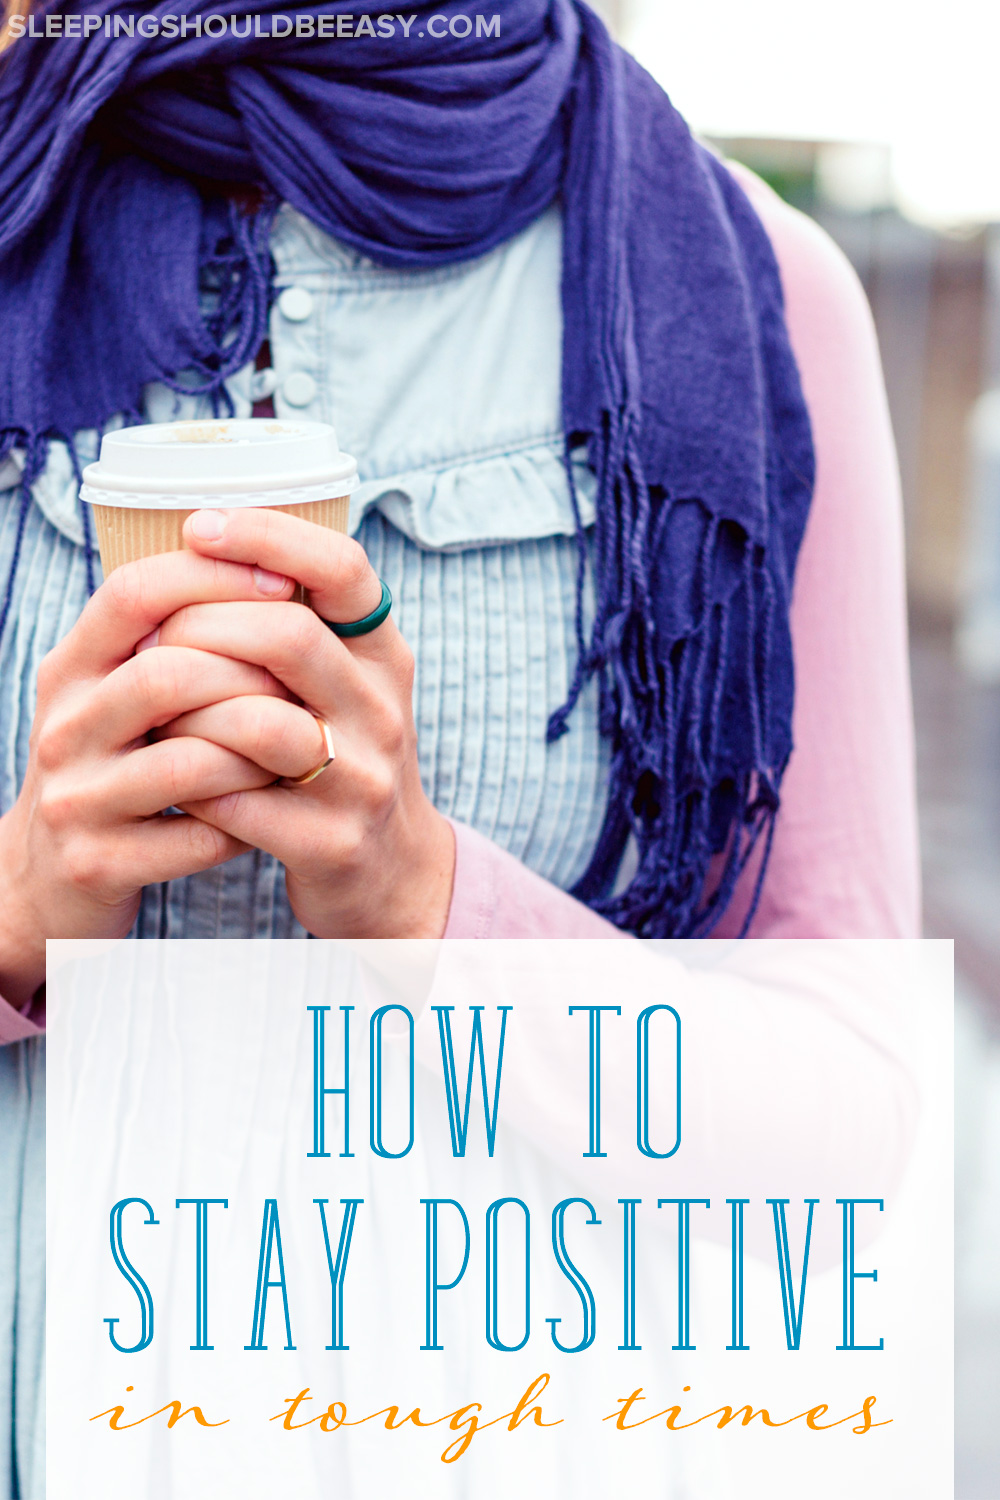 For many parents, difficult times are hard to overcome, and challenges never seem to end. Here's how to stay positive when times are tough.